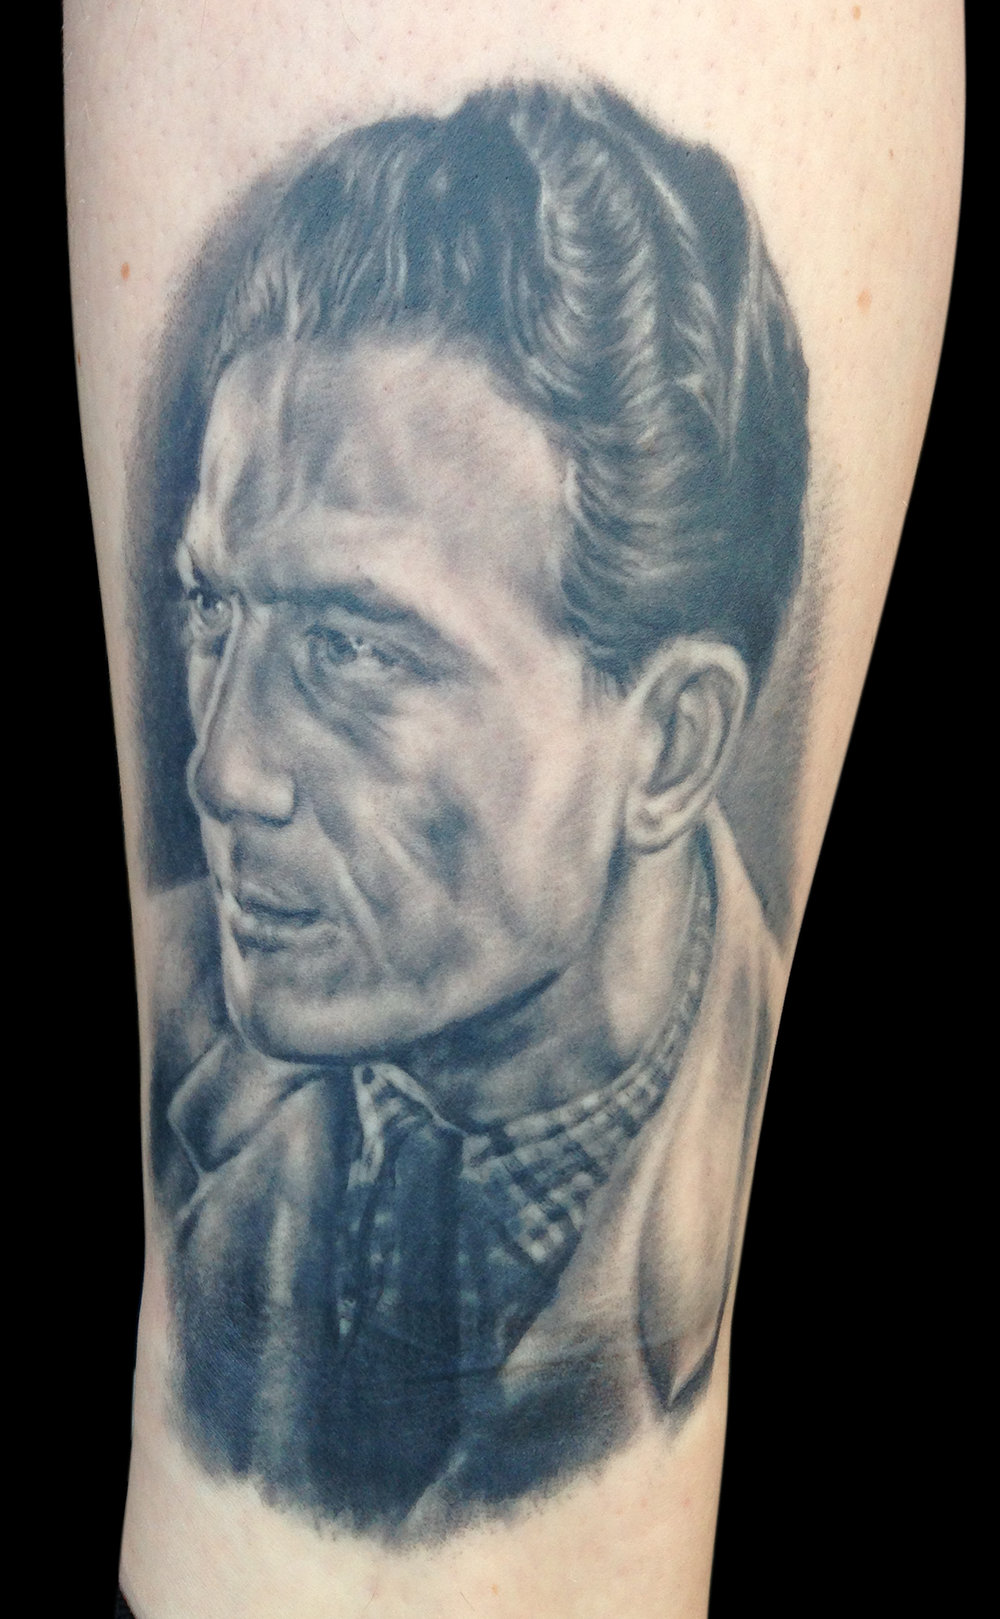 Black and Grey 'Grandpa the Artist and Sailor' Memorial Portrait Tattoo, (healed) tattoo was done at 'Ink for the Oceans' day at Für Immer Tattoo Berlin,  all of the money for the tattoo was donated in support of the charity.